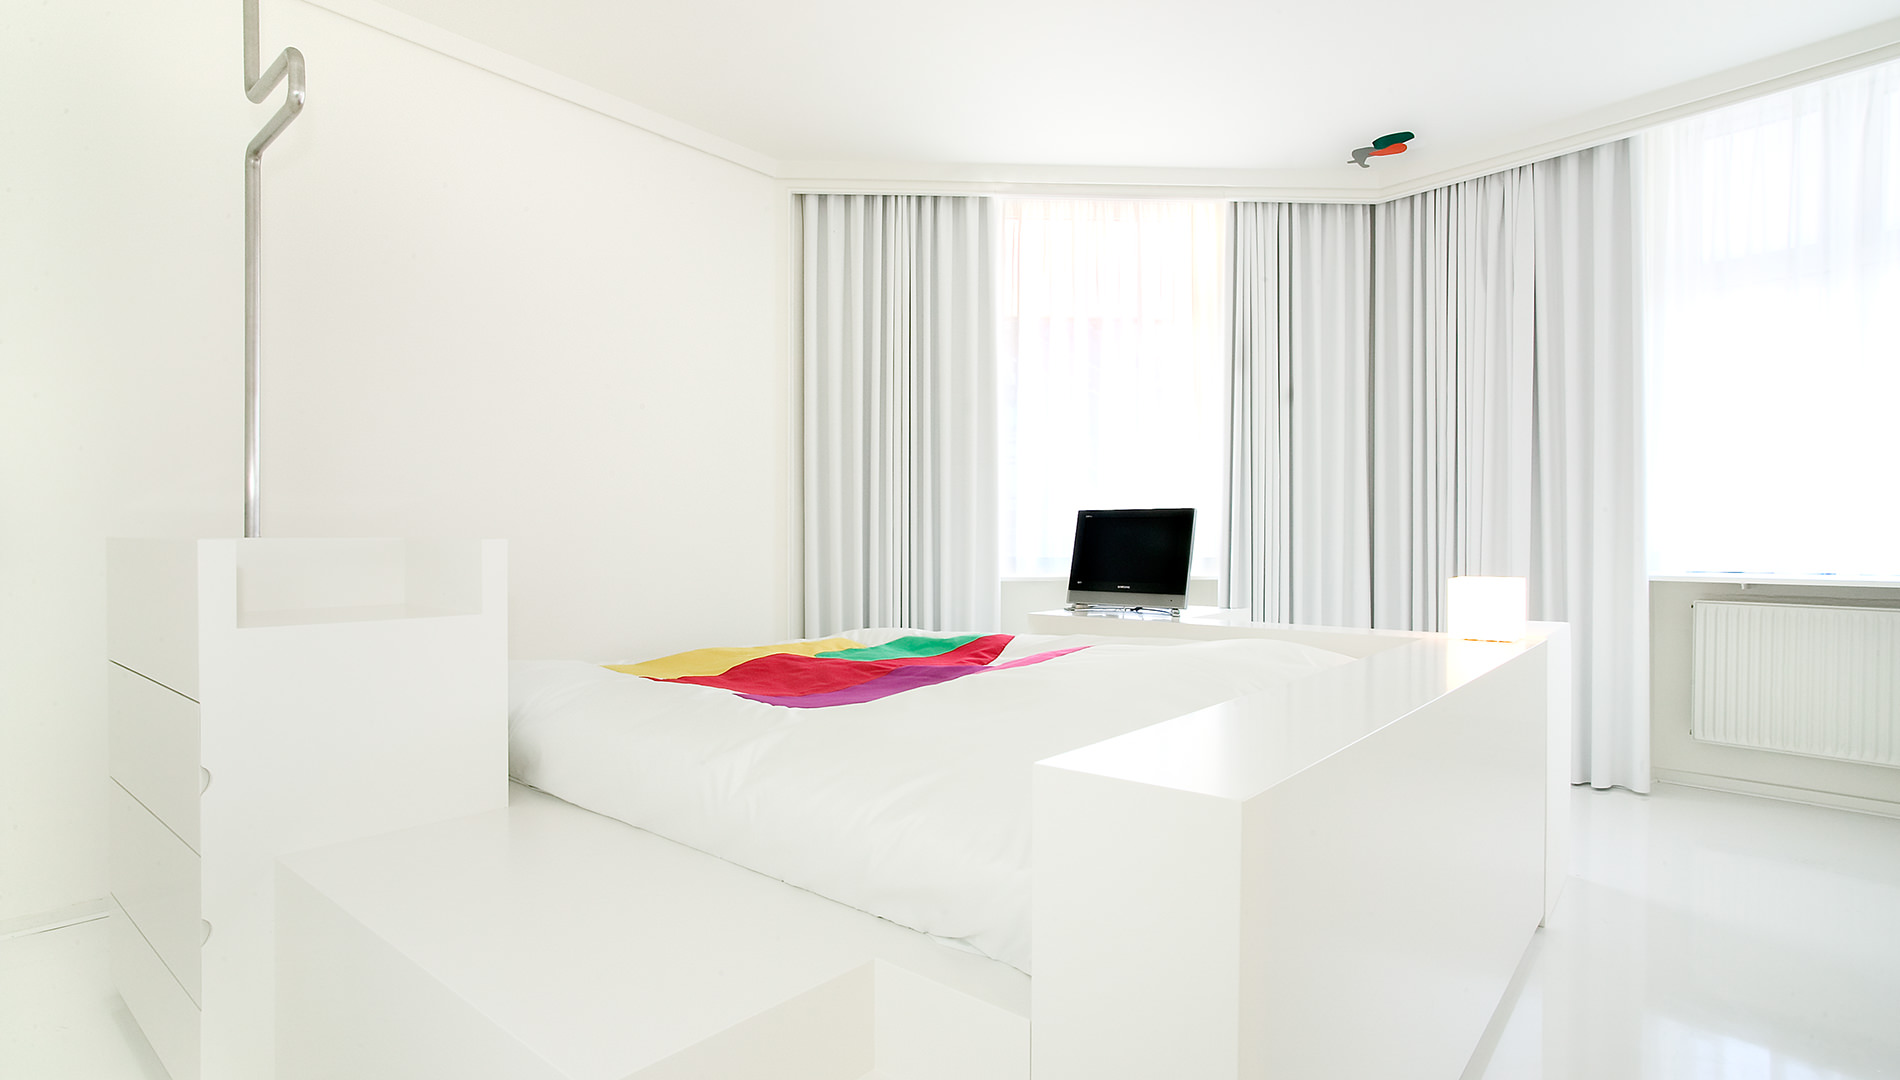 Messe Design Live Kommunikation Kopenhagen Hotel Fox Hotelzimmer Bett Going Places EventLabs